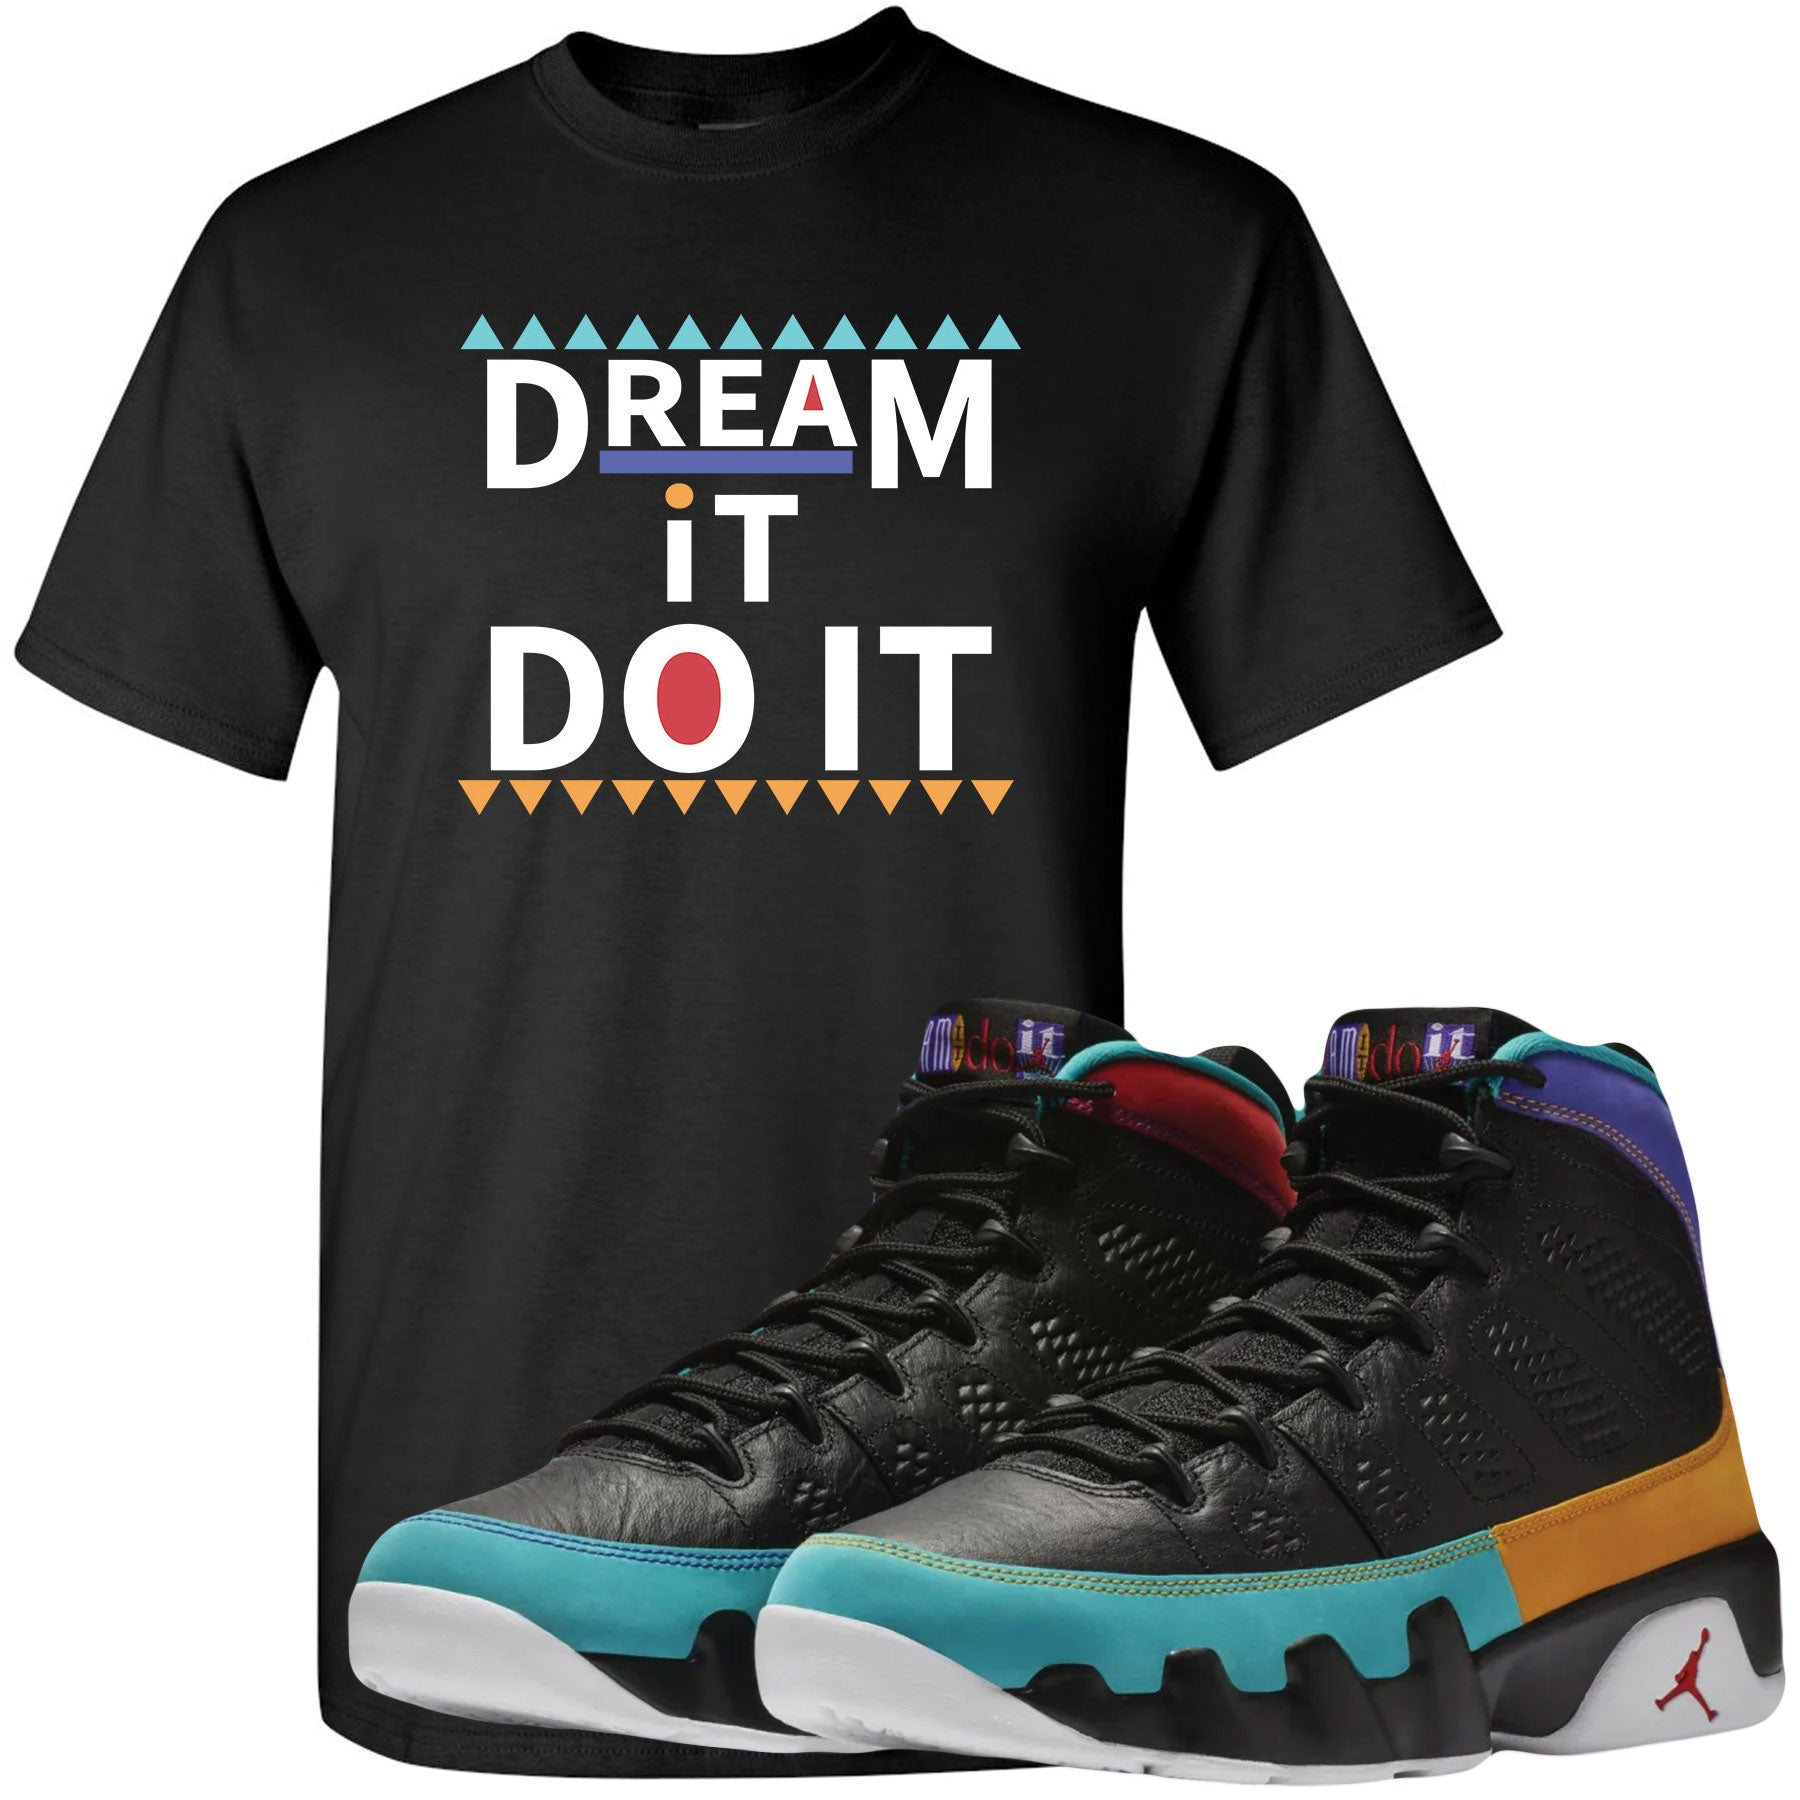 fd9c7fdd0c5 ... Shop sneaker matching clothing to match your pair of Jordan 9 Dream It  Do It Sneakers ...